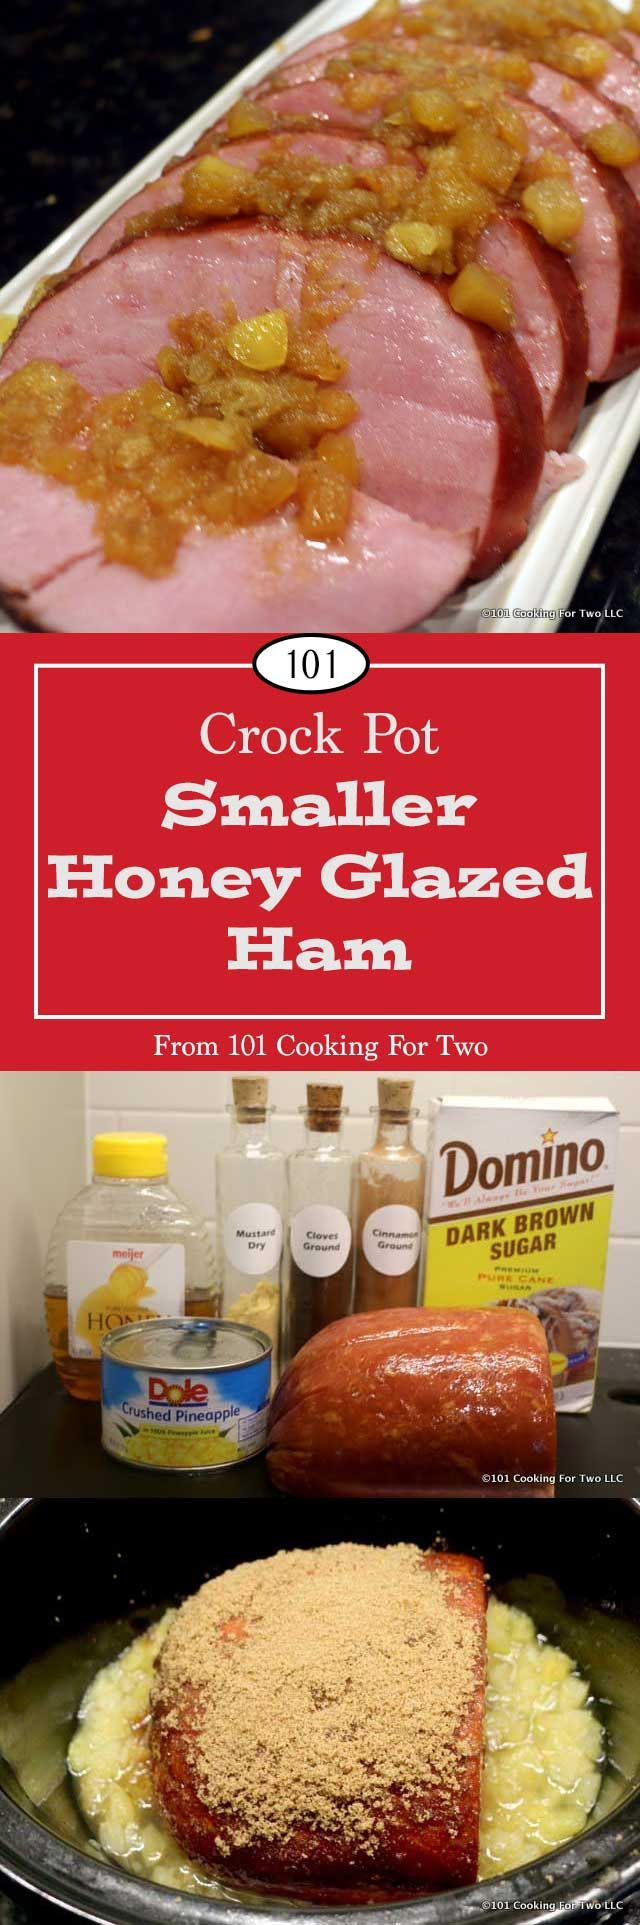 Crock Pot Honey Glazed Ham from 101 Cooking for Two